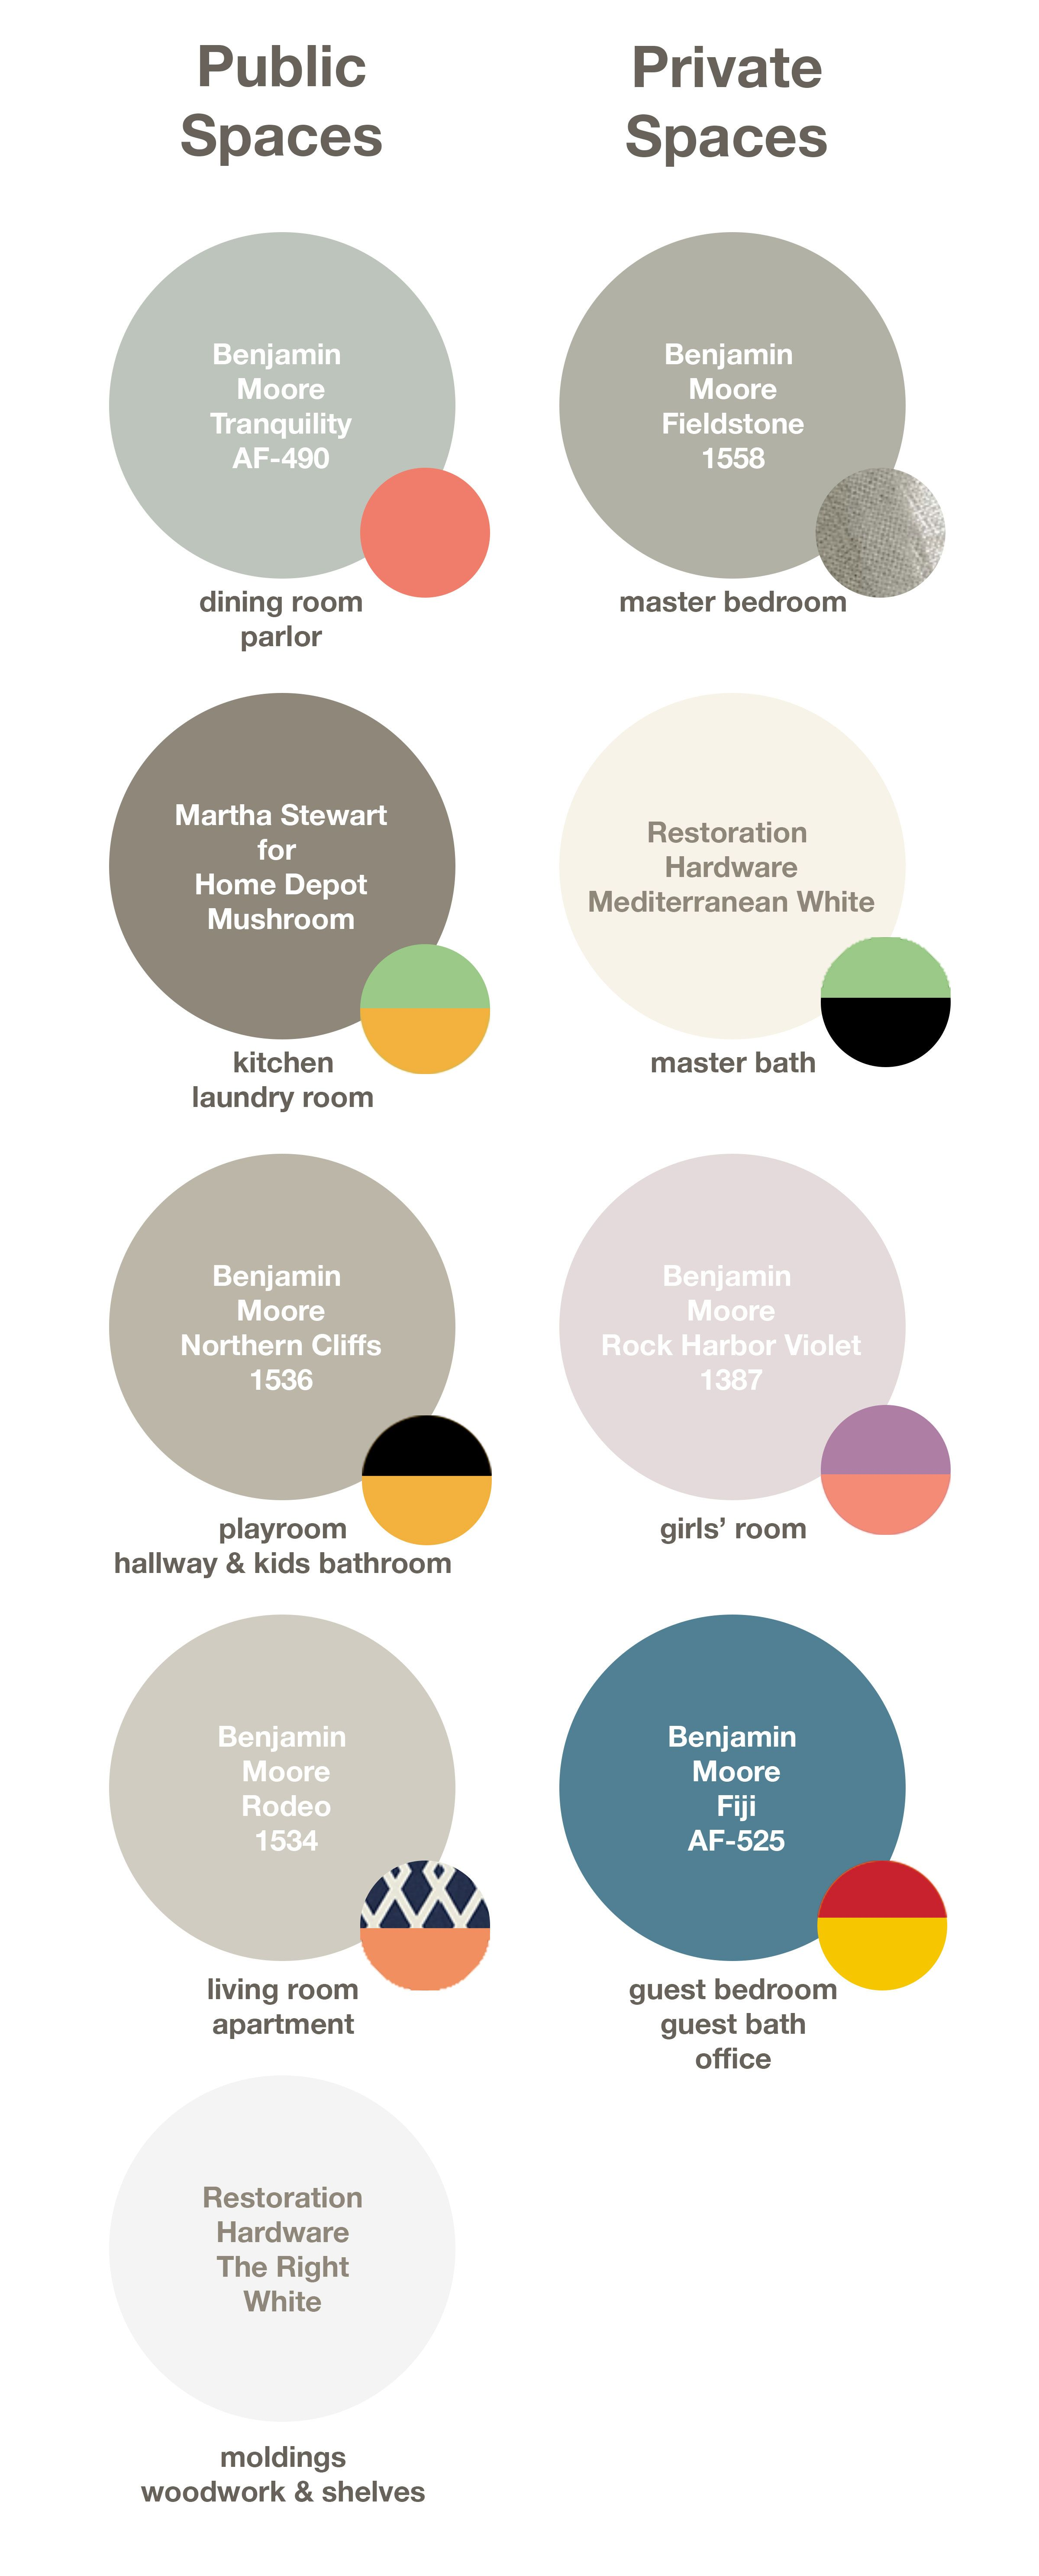 Benjamin moore paint home depot - Benjamin Moore Tranquility Af 490 Martha Stewart For Home Depot In Mushroom